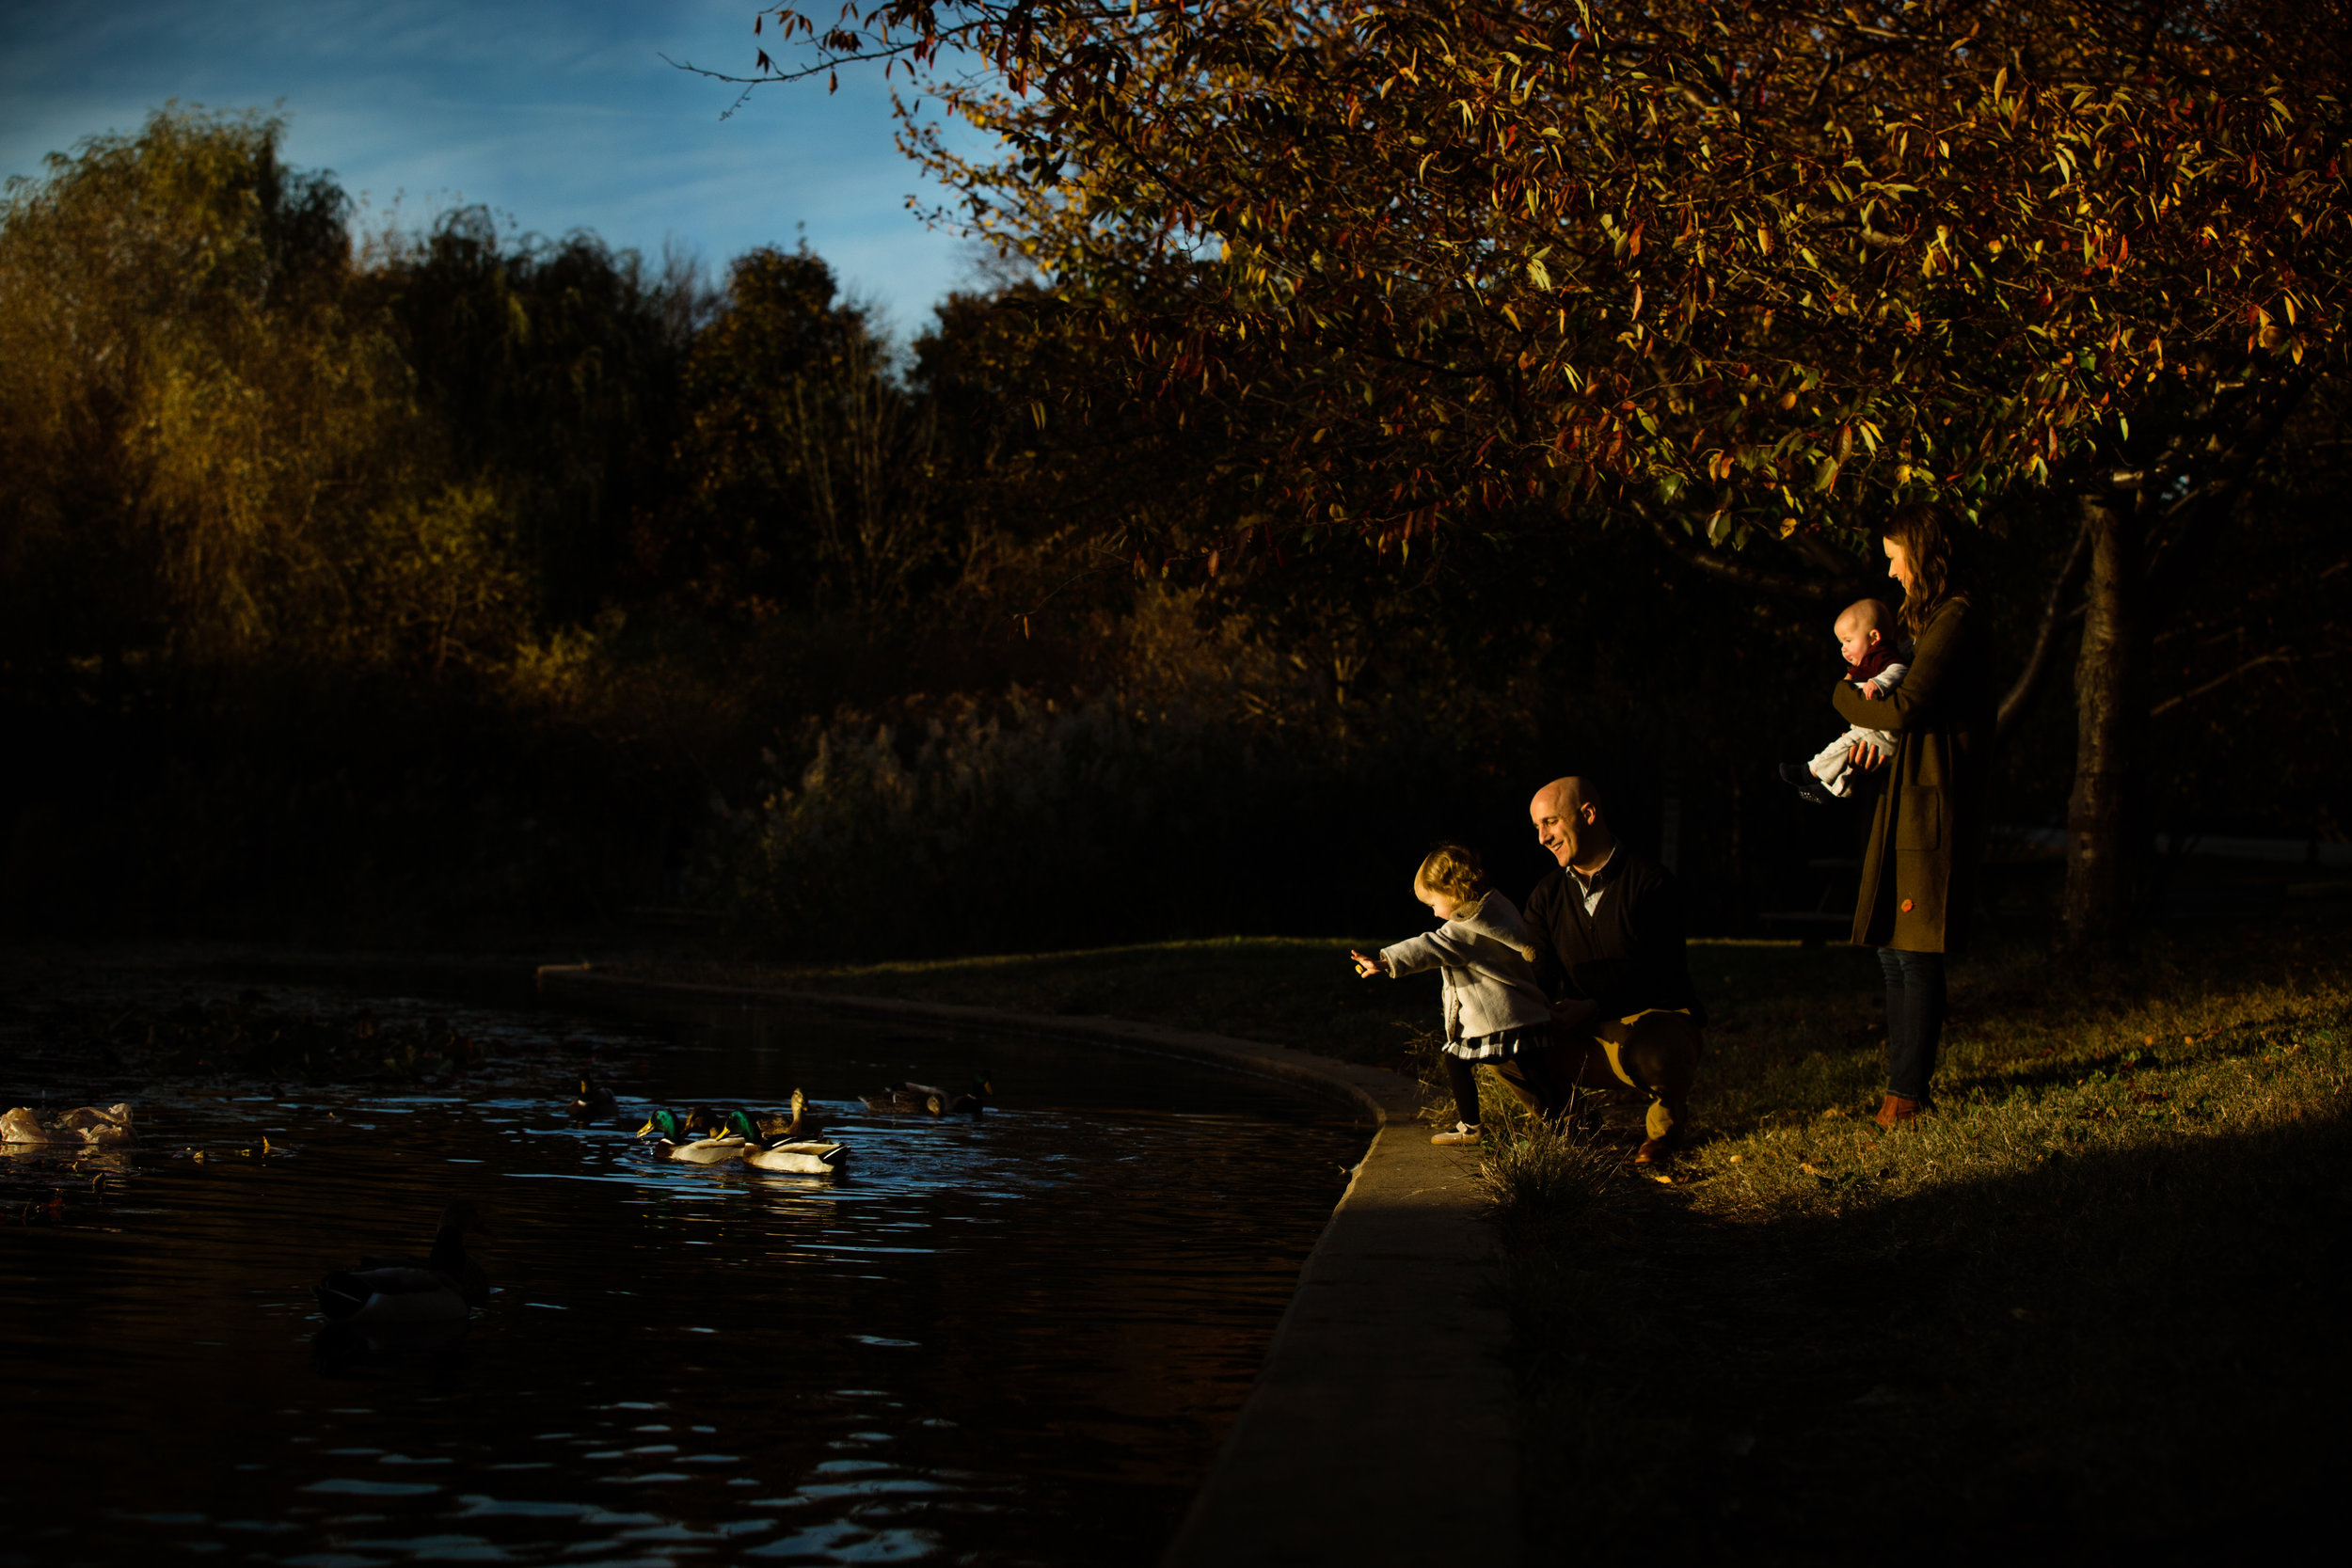 dad helps daughter feed the ducks in Patterson Park, Baltimore while mother holding baby son look on